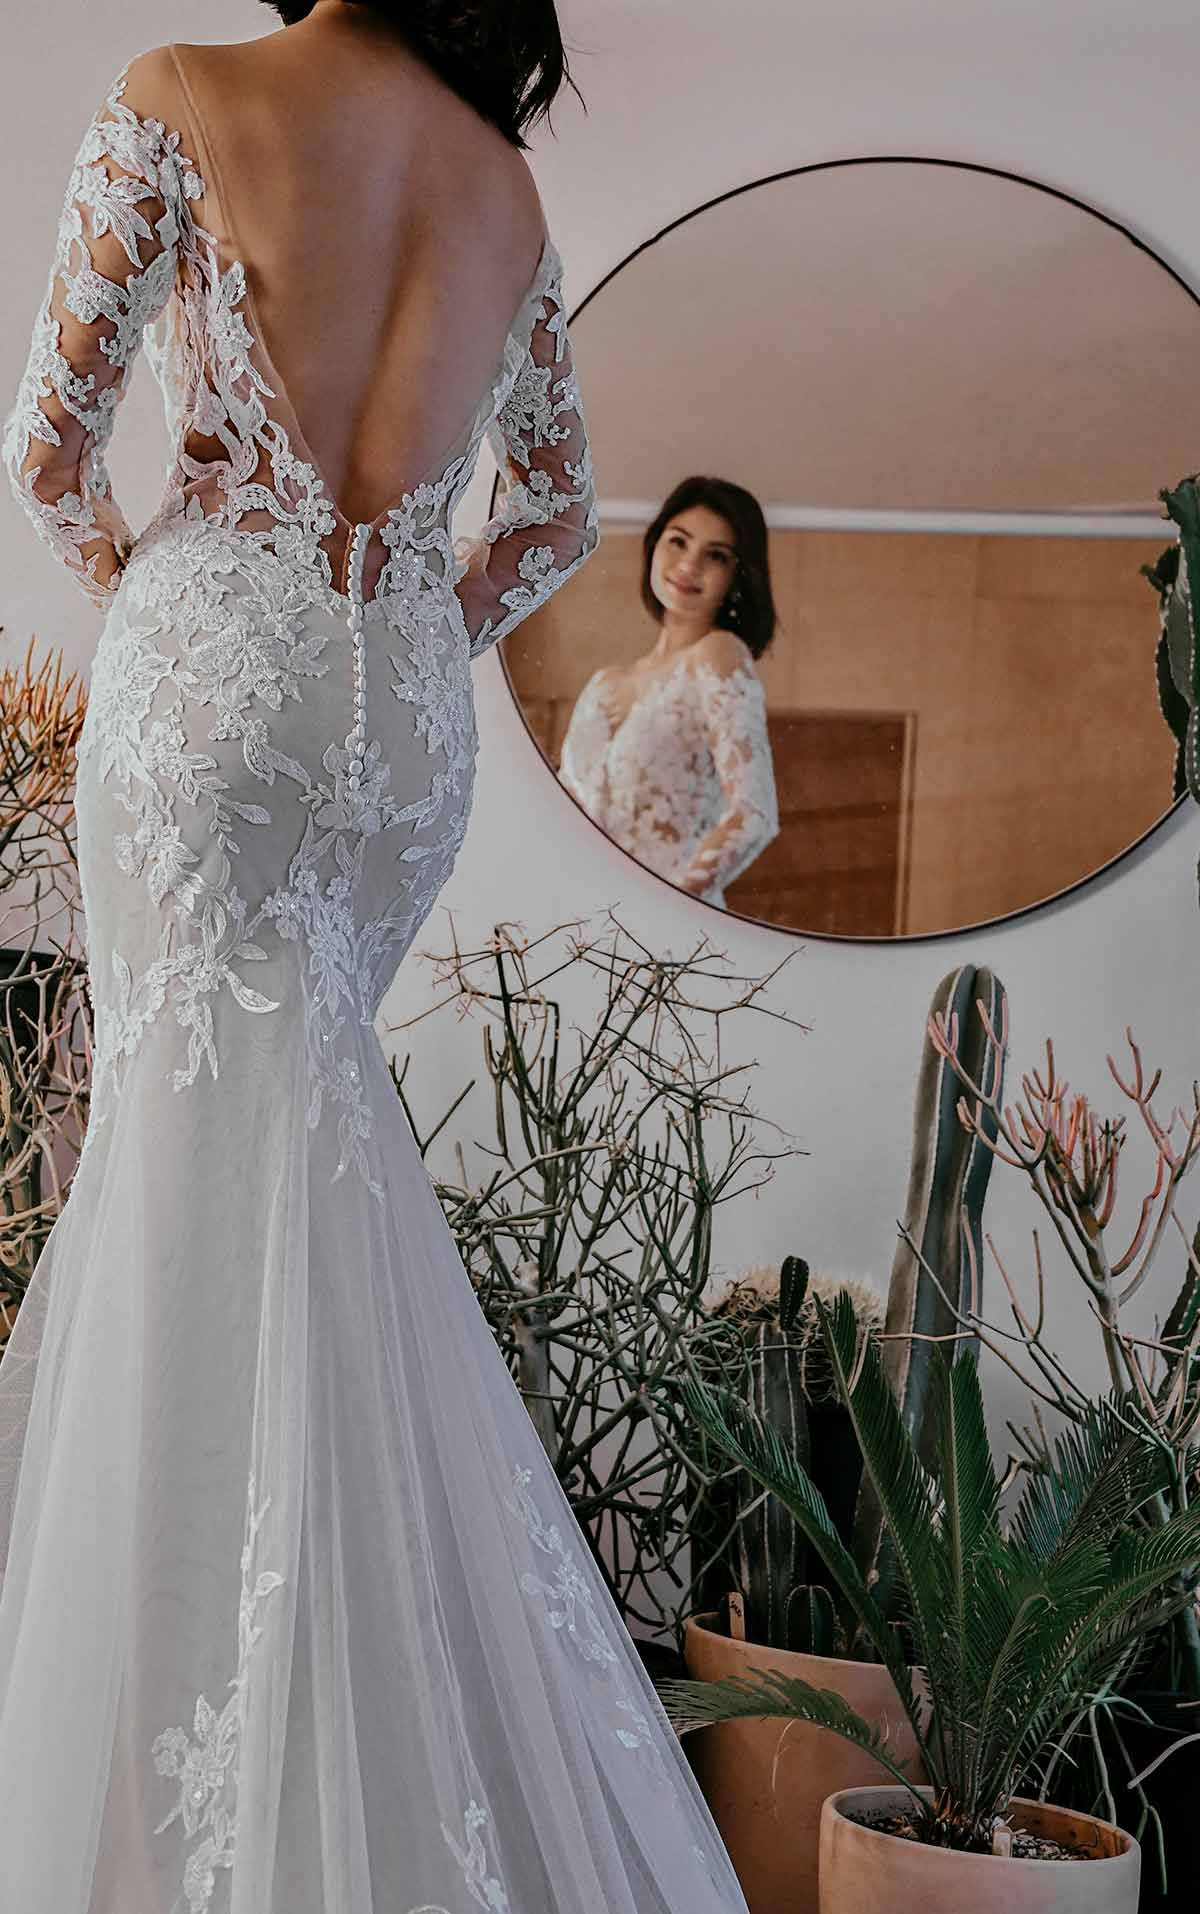 Sheer Floral Lace Wedding Dress With Long Sleeves Essense Of Australia Wedding Dresses In 2021 Essense Of Australia Wedding Dresses Floral Lace Wedding Dress Wedding Dresses [ 1914 x 1200 Pixel ]